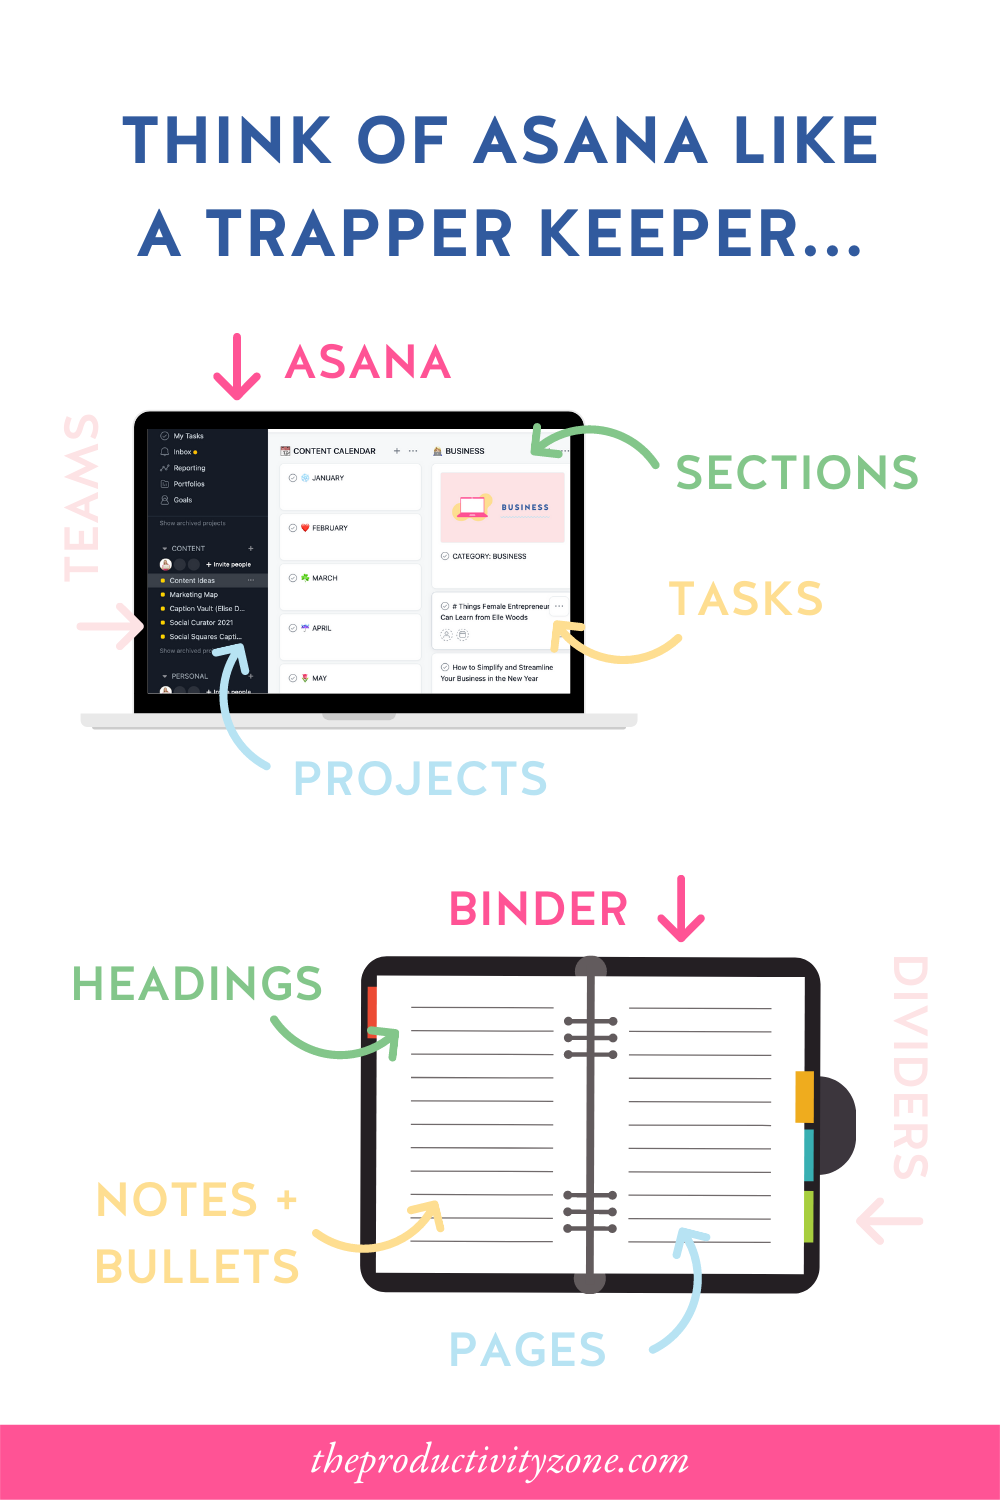 laptop mockup showing the breakdown of Asana, teams, projects, sections, and tasks on the top and a trapper keeper mockup showing the breakdown of binder, dividers, pages, headings, and bullet points on the bottom